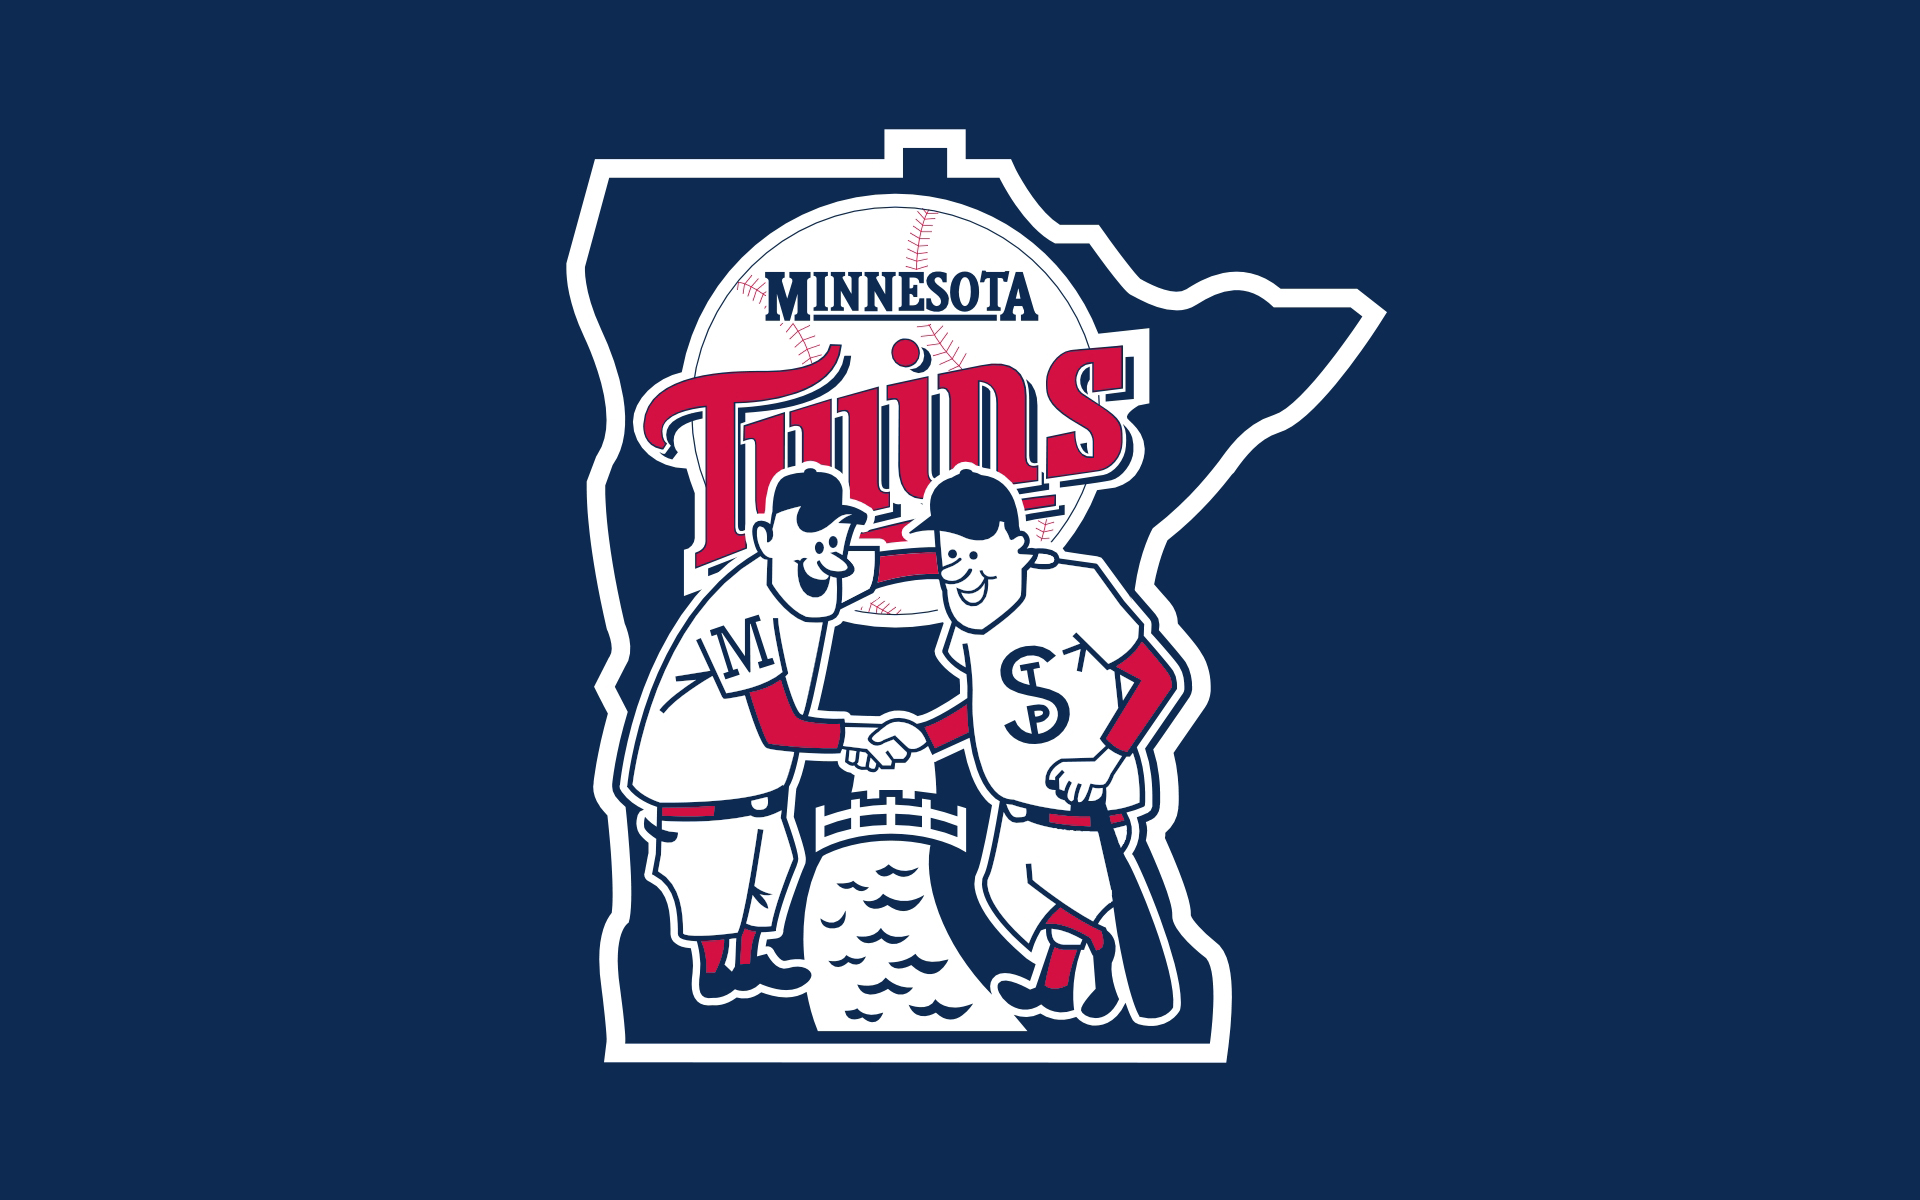 MINNESOTA TWINS mlb baseball 29 wallpaper 1920x1200 1920x1200